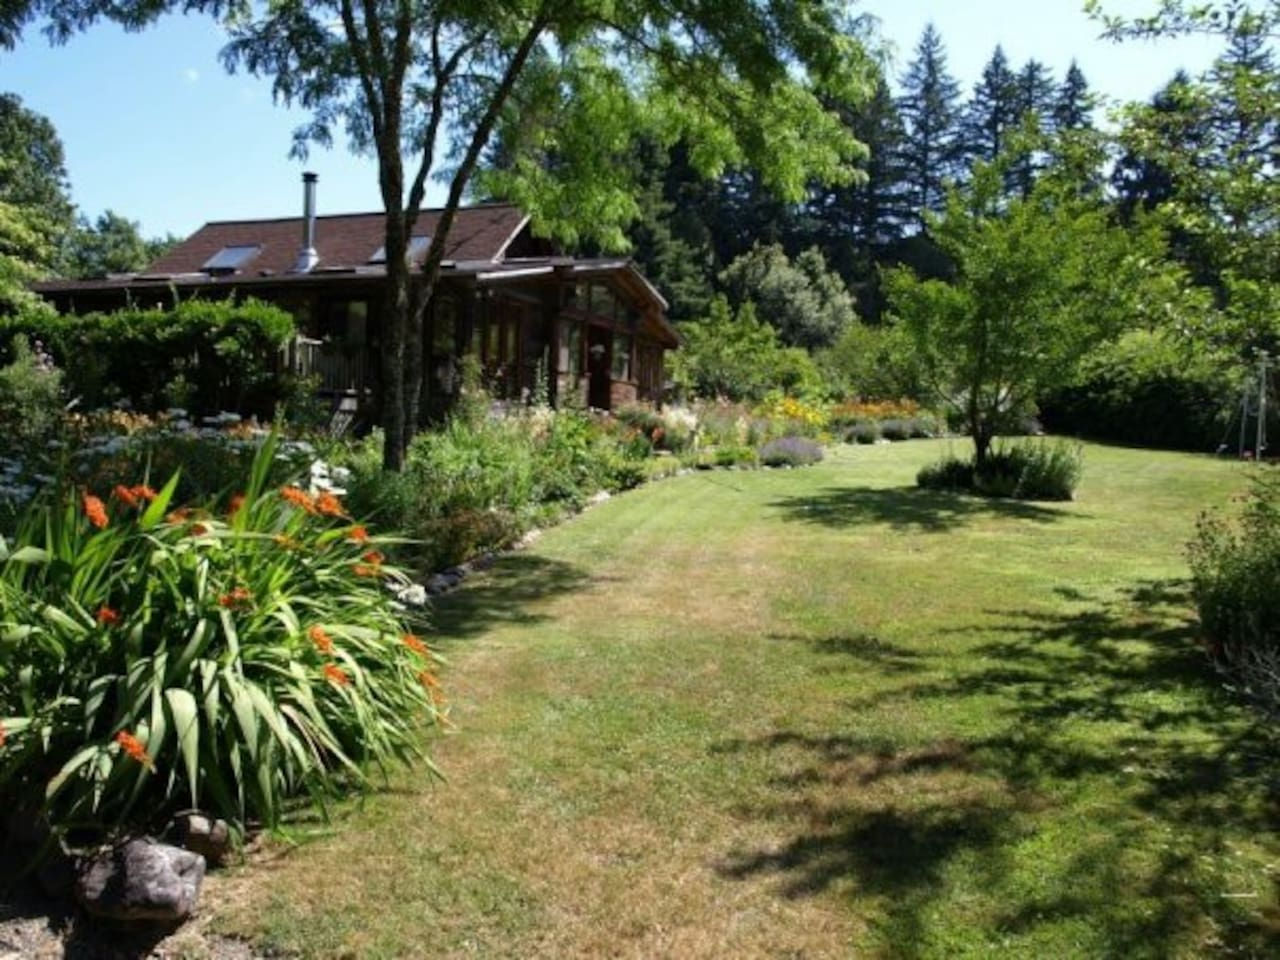 Myrtle Glen Farm - A haven of natural beauty and peaceful retreat.